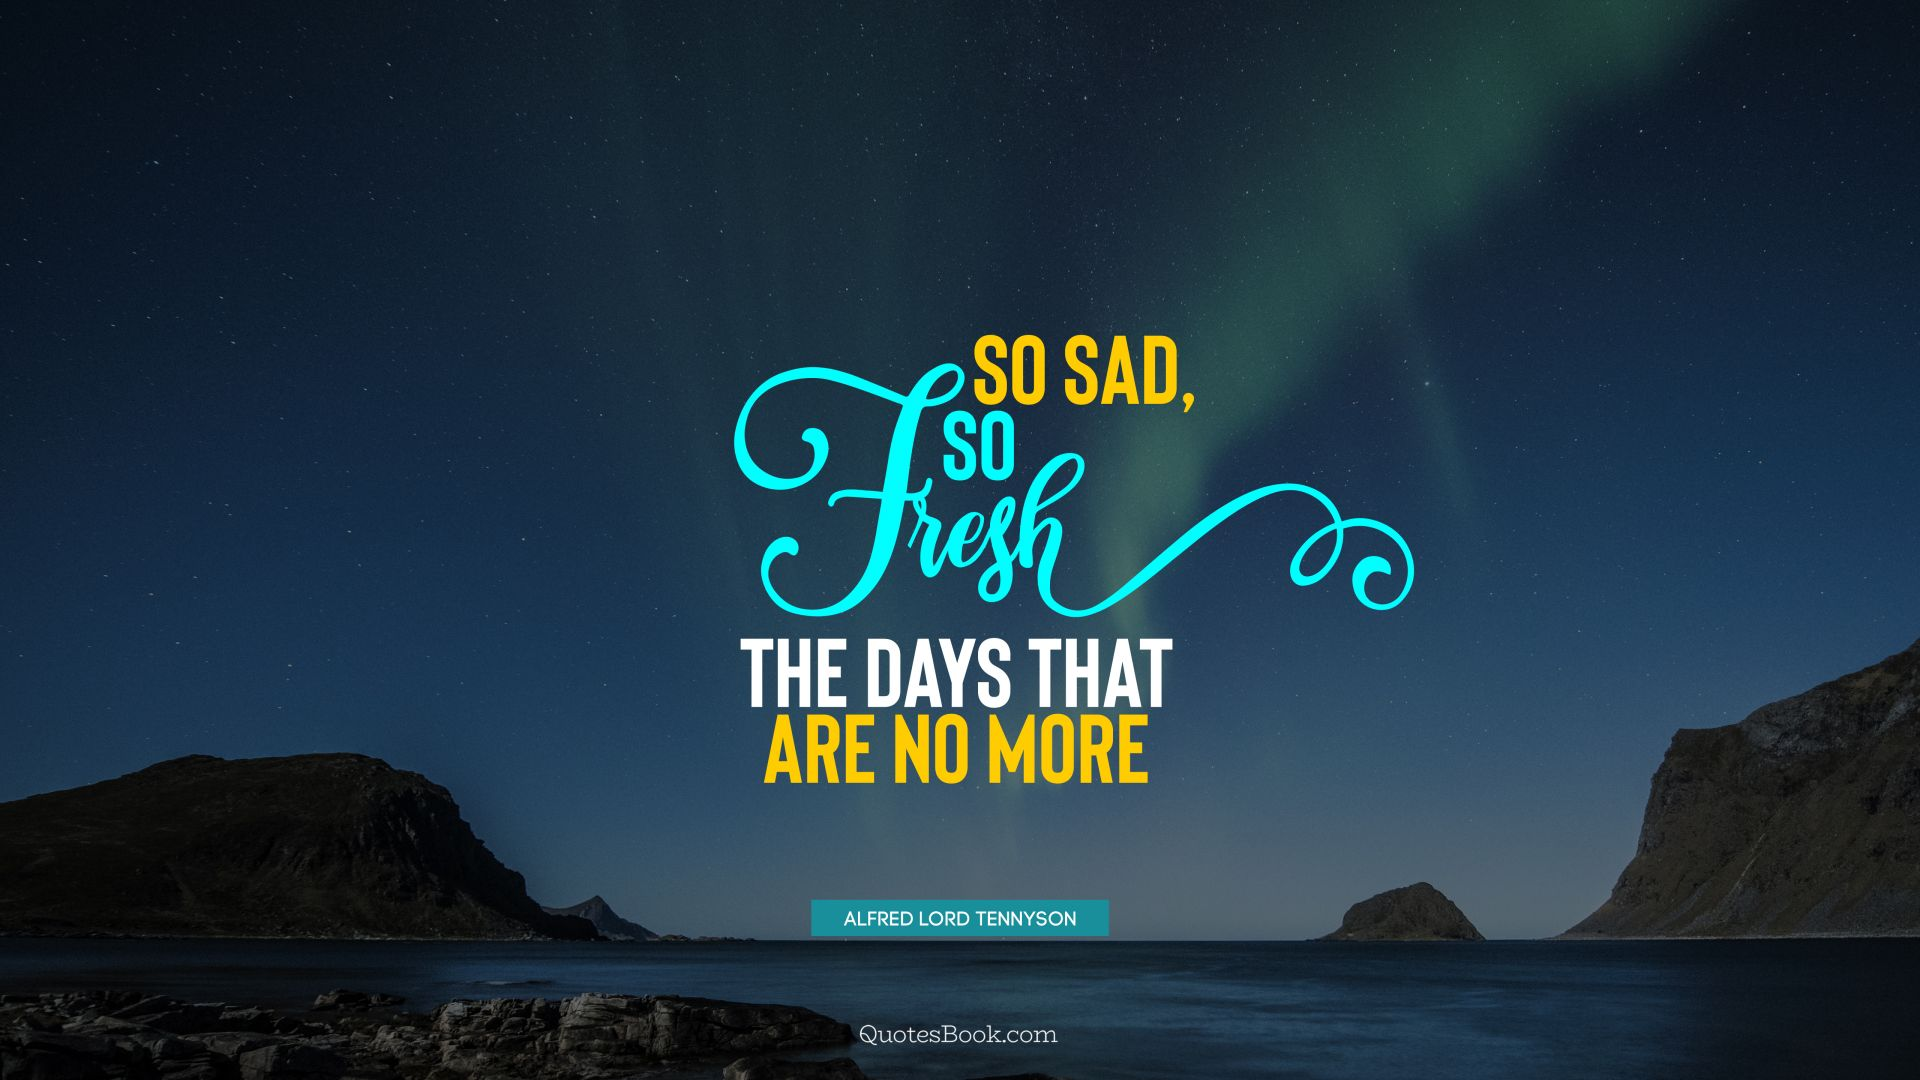 So sad, so fresh the days that are no more. - Quote by Alfred Lord Tennyson